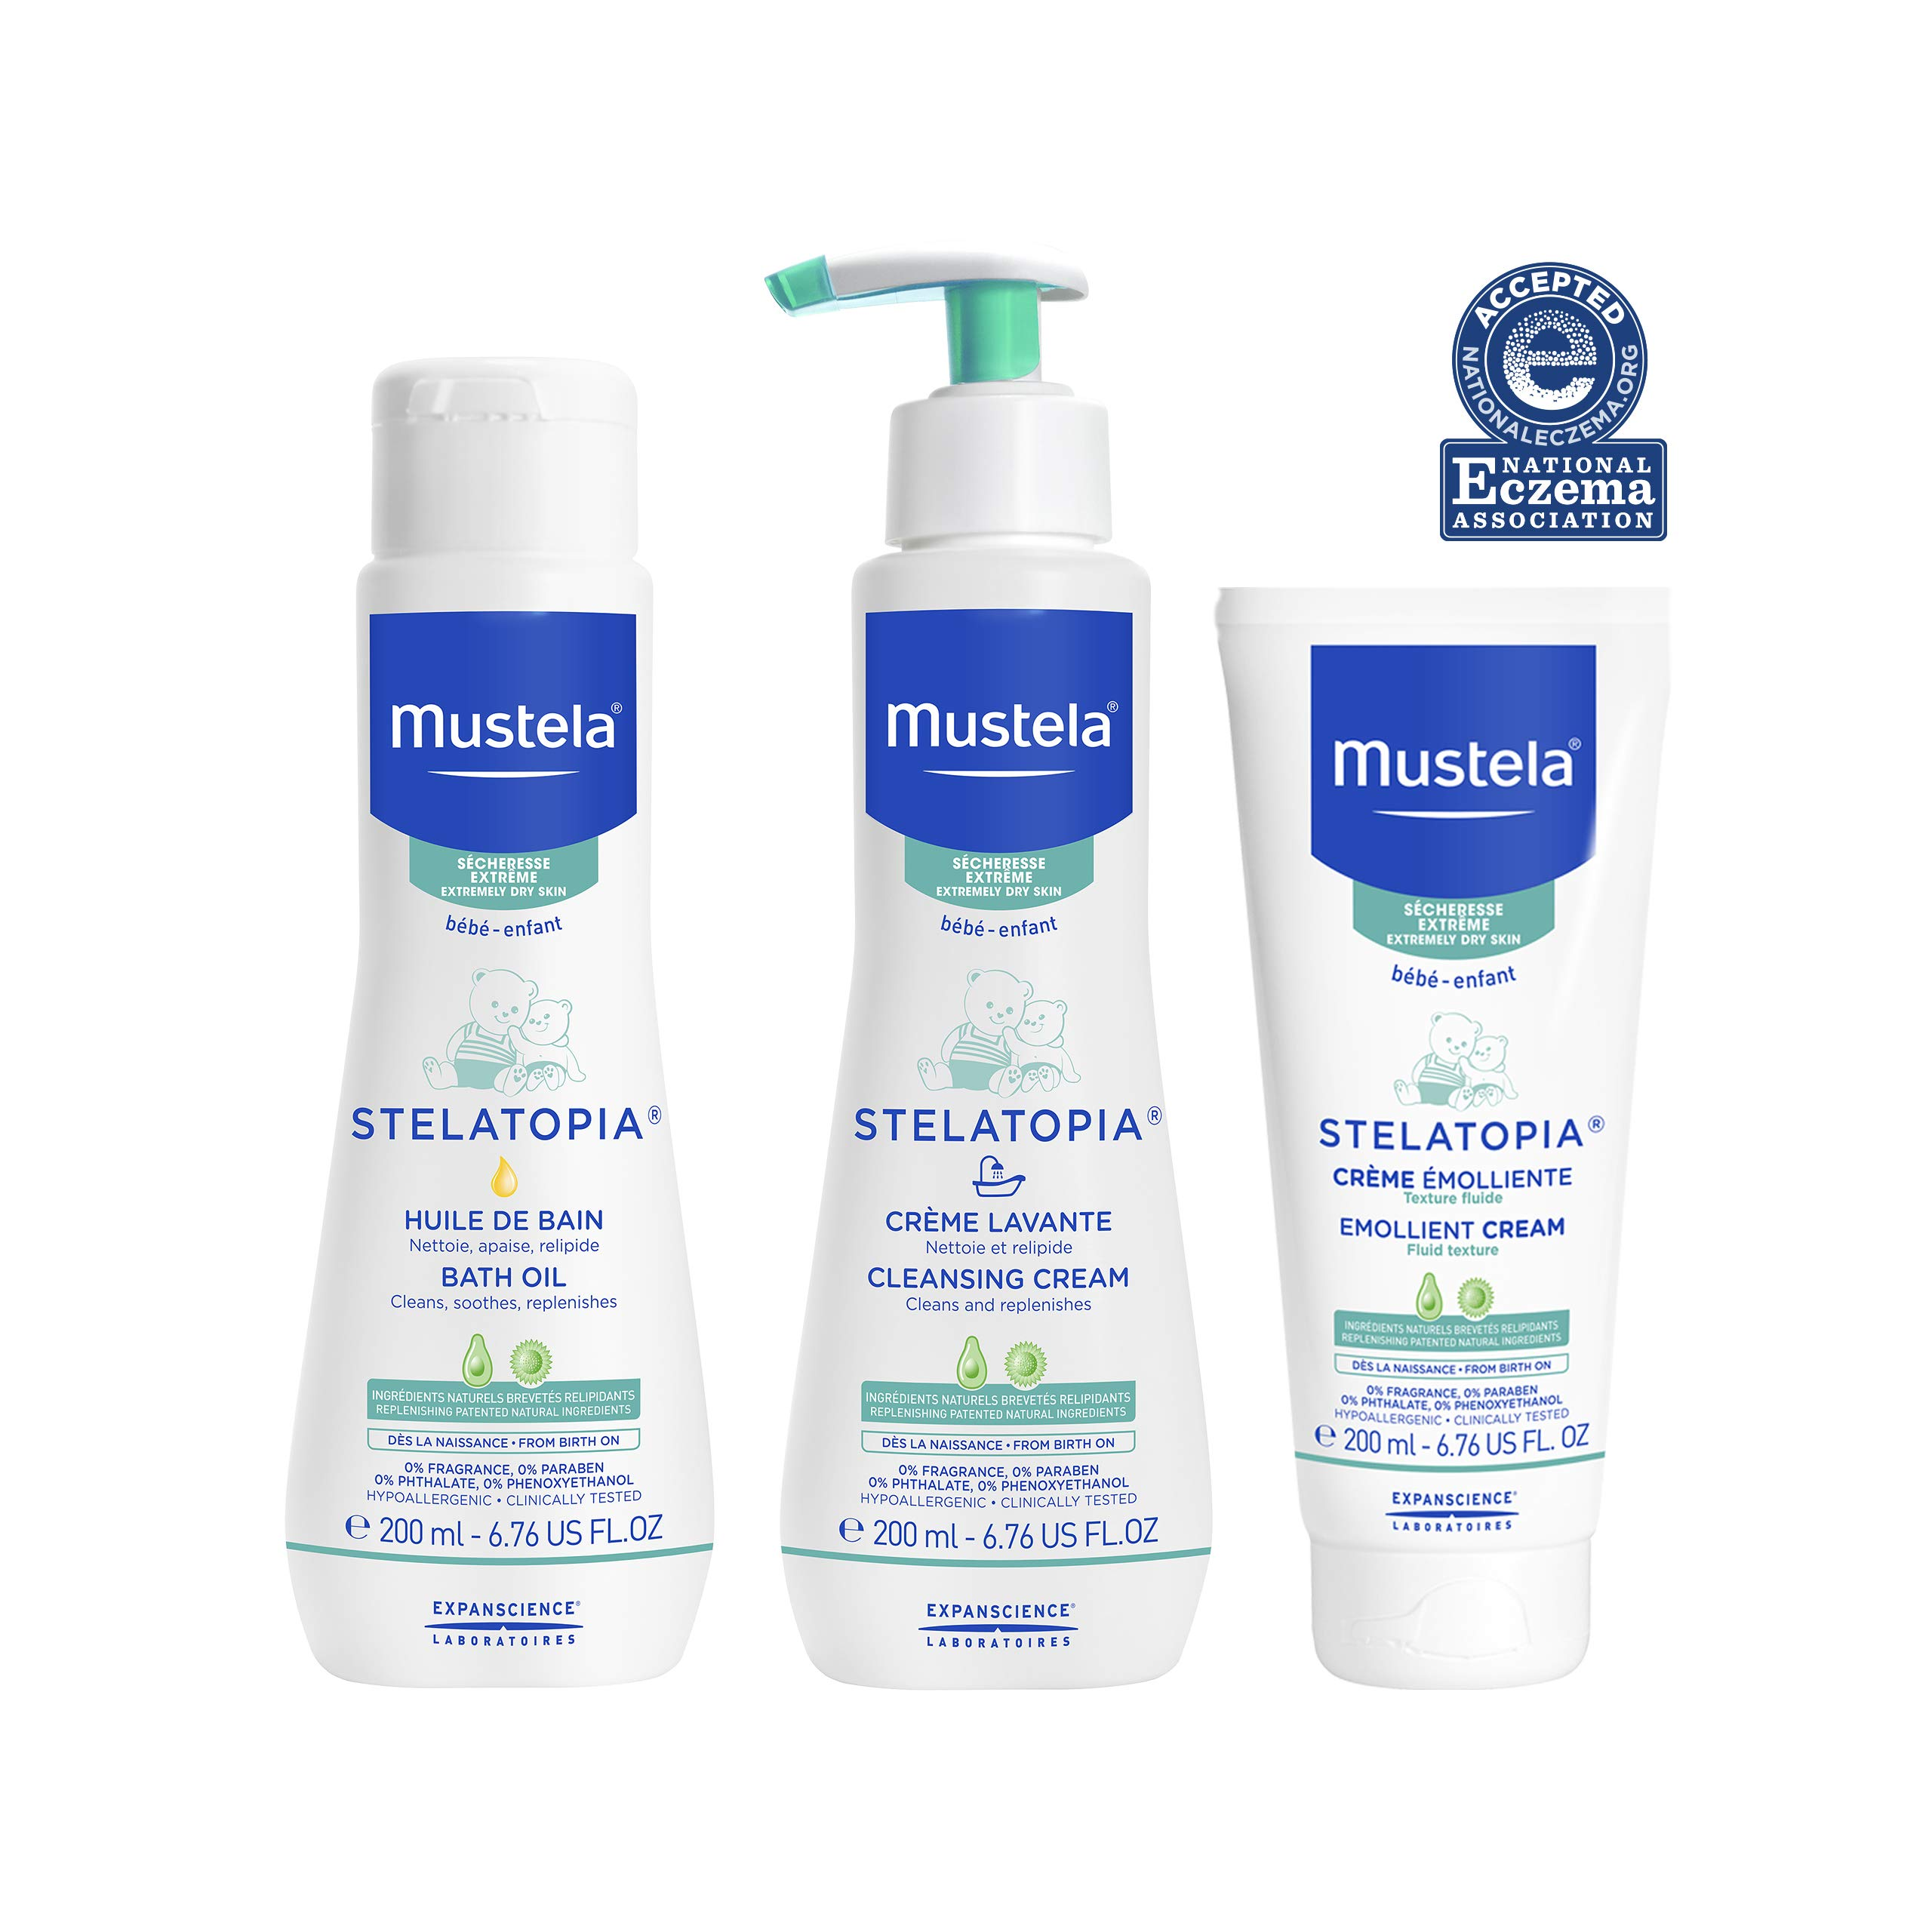 Mustela Bath Time Gift Set, Baby Skin Care, Available for Normal, Dry, Sensitive, and Eczema-Prone Skin by Mustela